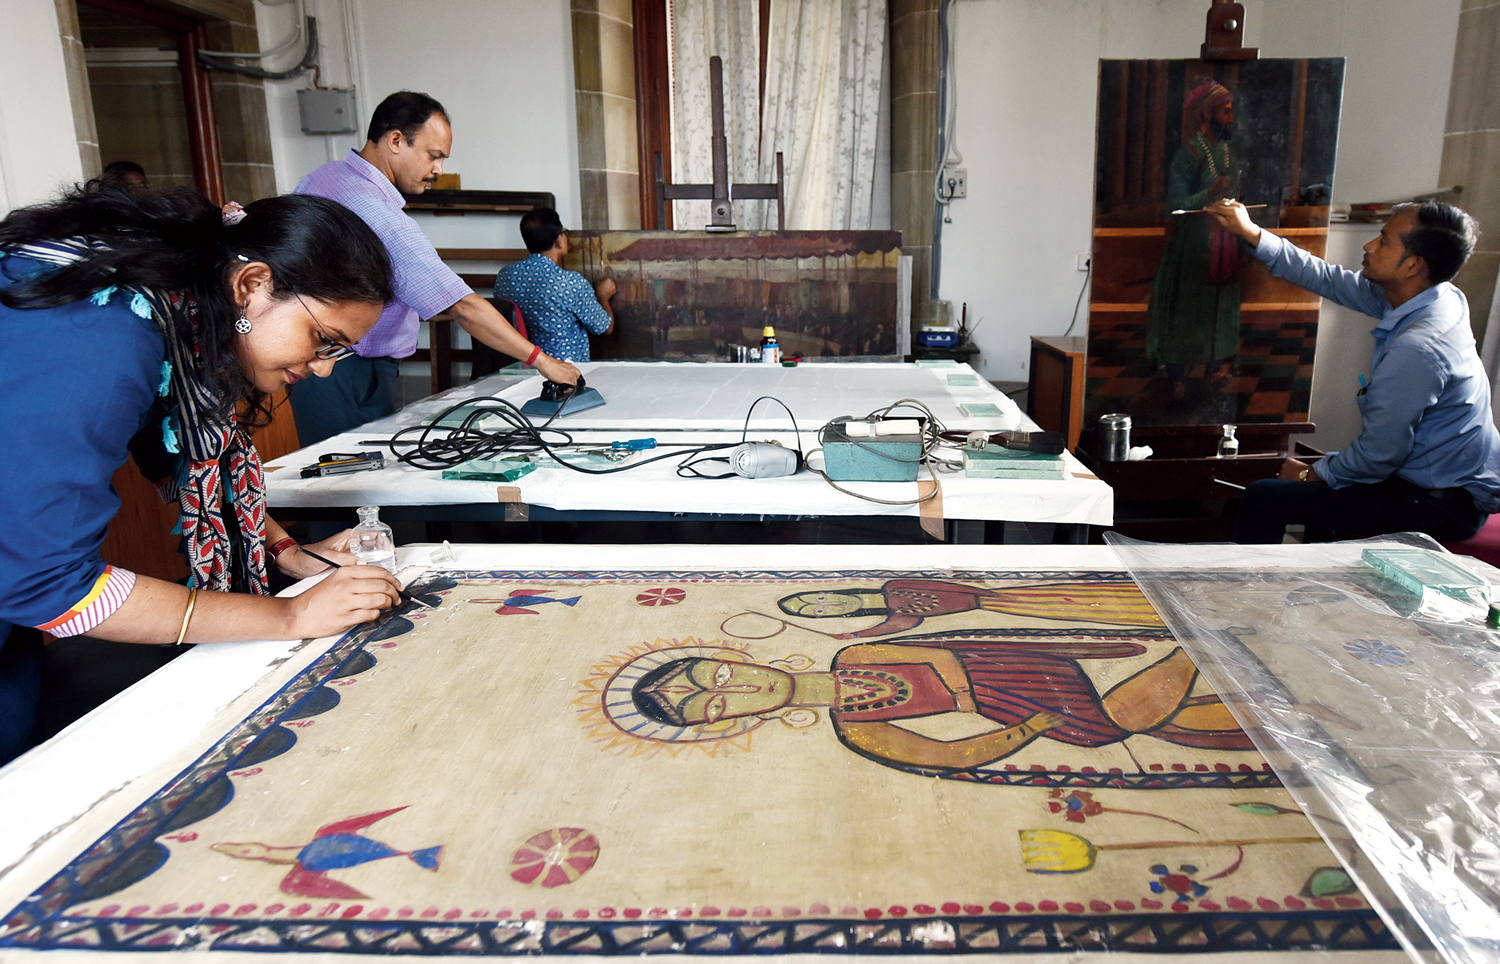 HEALING TOUCH: Restorers at Victoria Memorial Hall work on a Jamini Roy painting on cloth